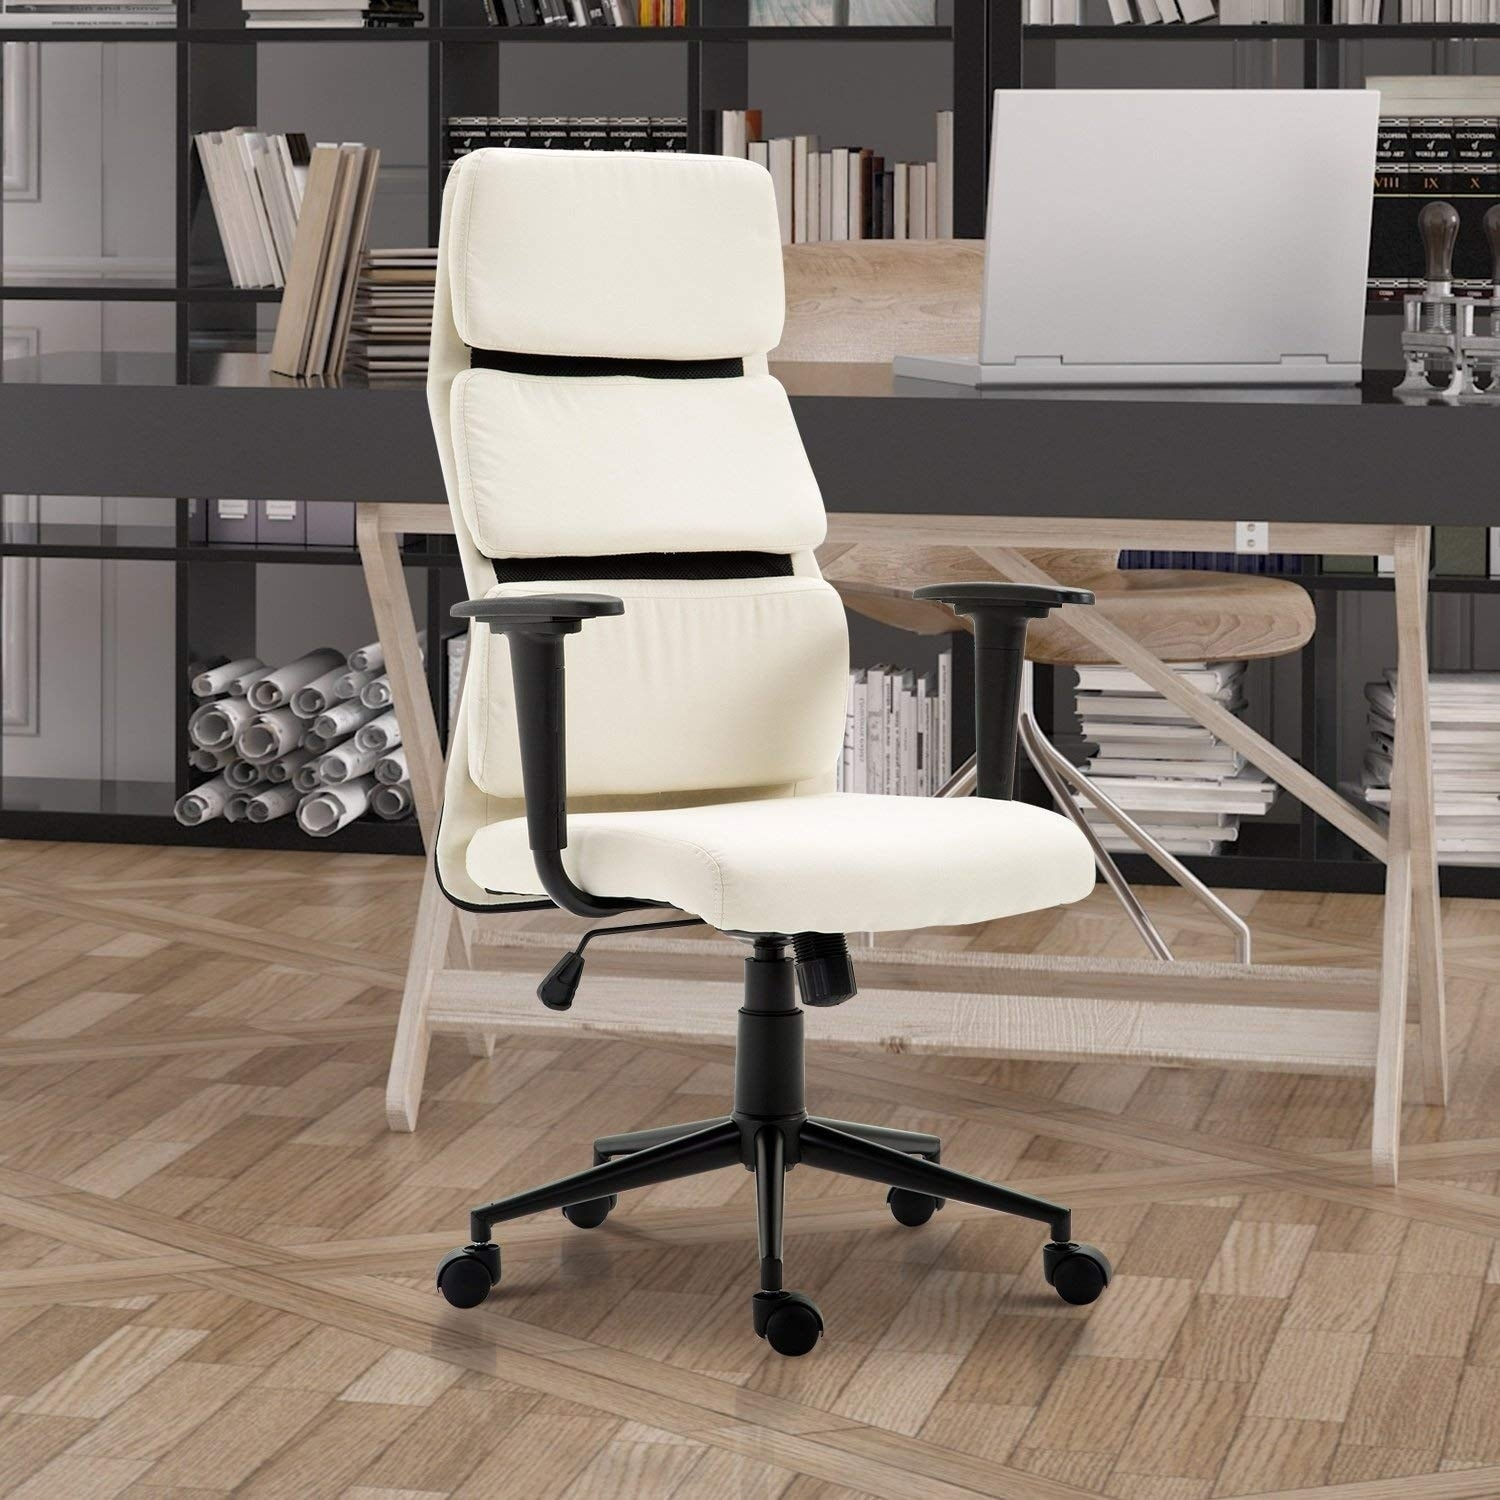 HomCom Lumbar Support Desktop Computer Chair with Arms - Cream White